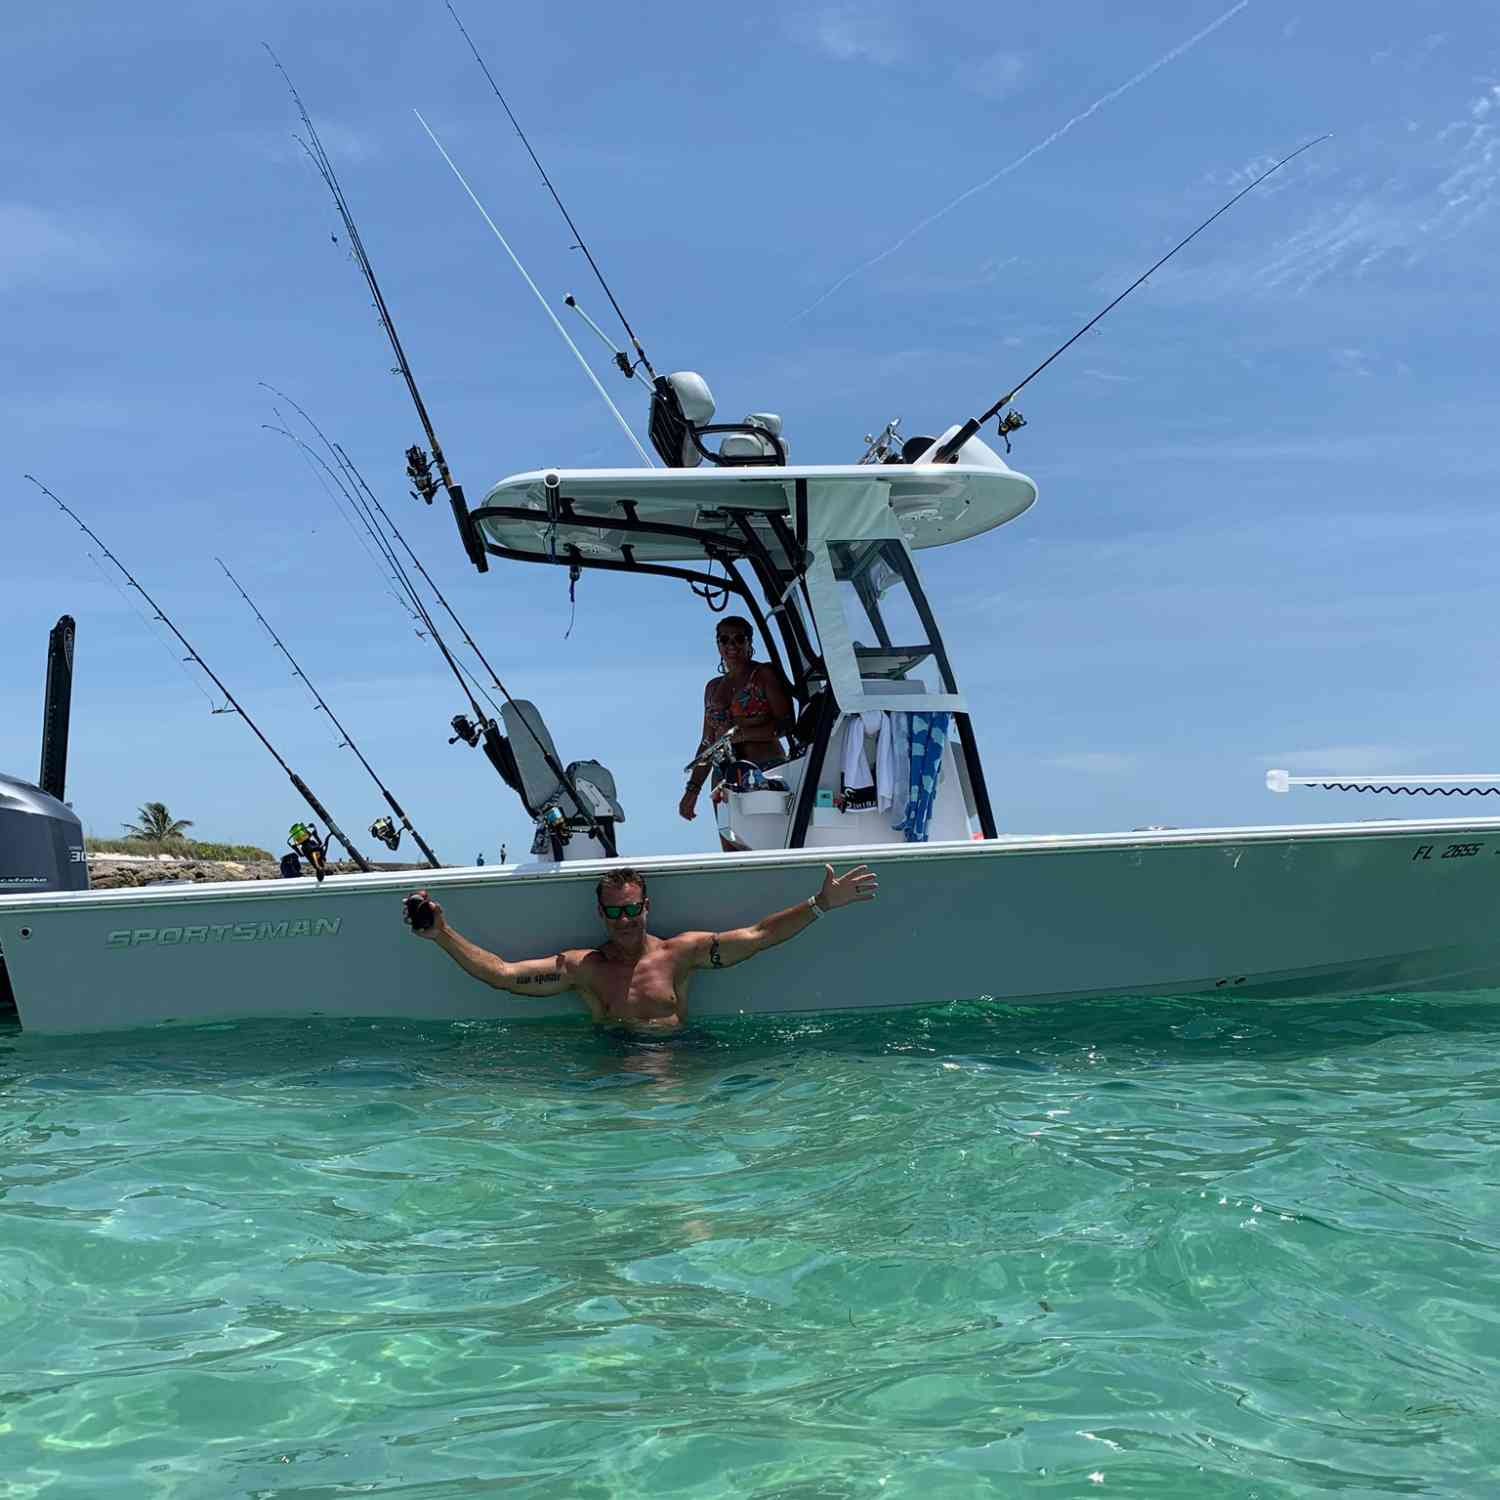 Title: Living the dream - On board their Sportsman Heritage 241 Center Console - Location: Boca Grande. Participating in the Photo Contest #SportsmanJune2020